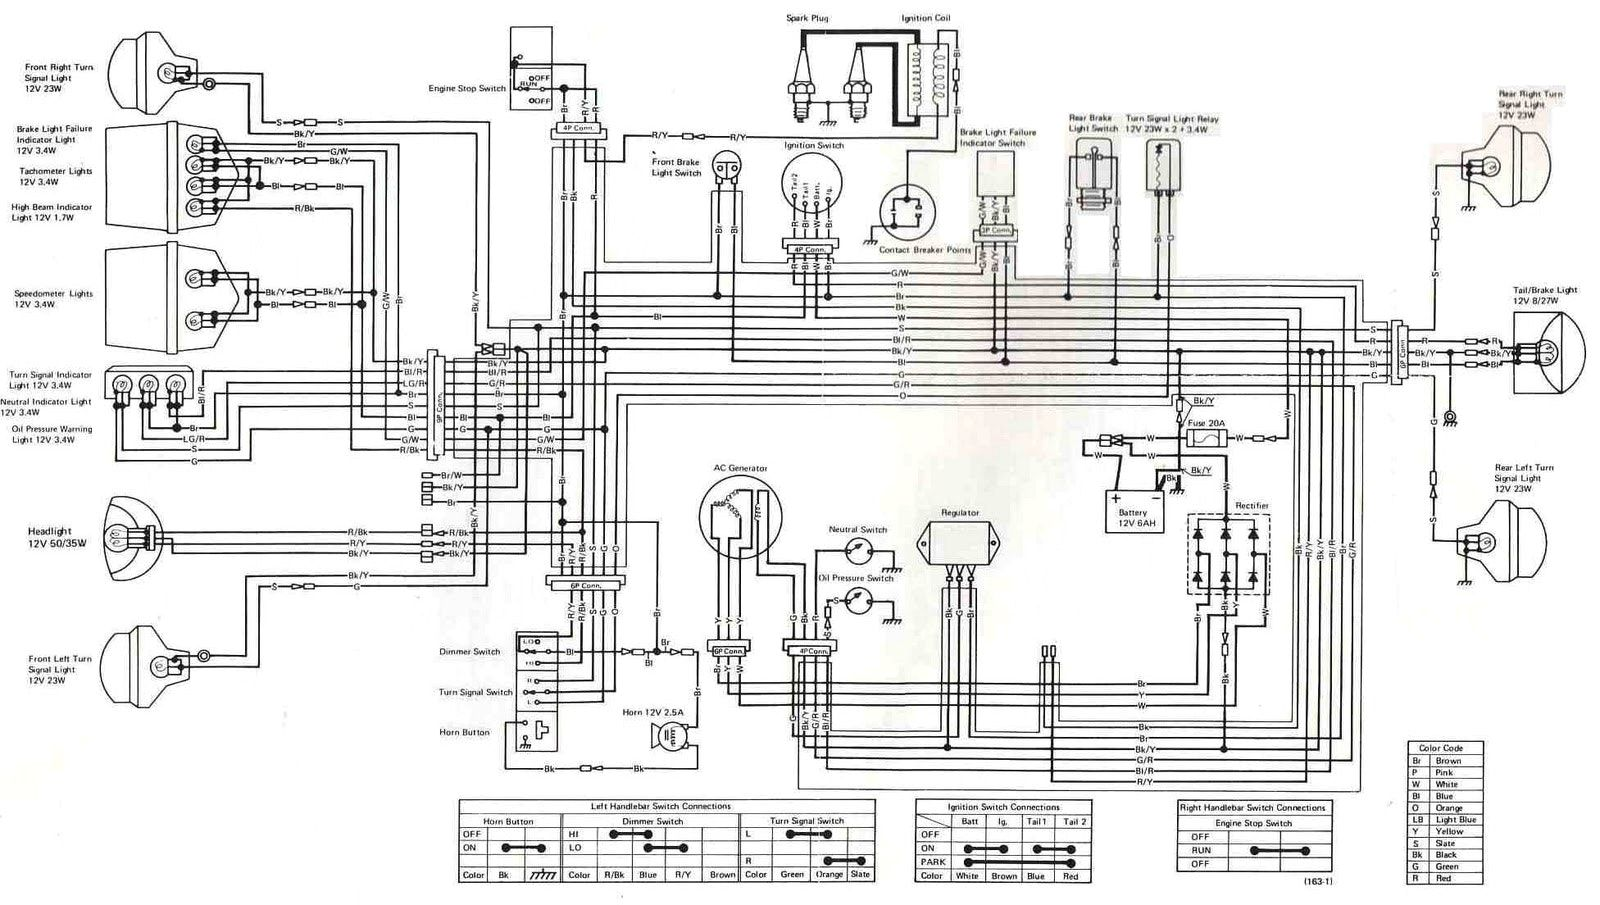 1981 Kawasaki 440 Ltd Wiring Diagram Simple Wiring Diagram Schema 1494 Case Wiring  Diagram Case 400 Wiring Diagrams